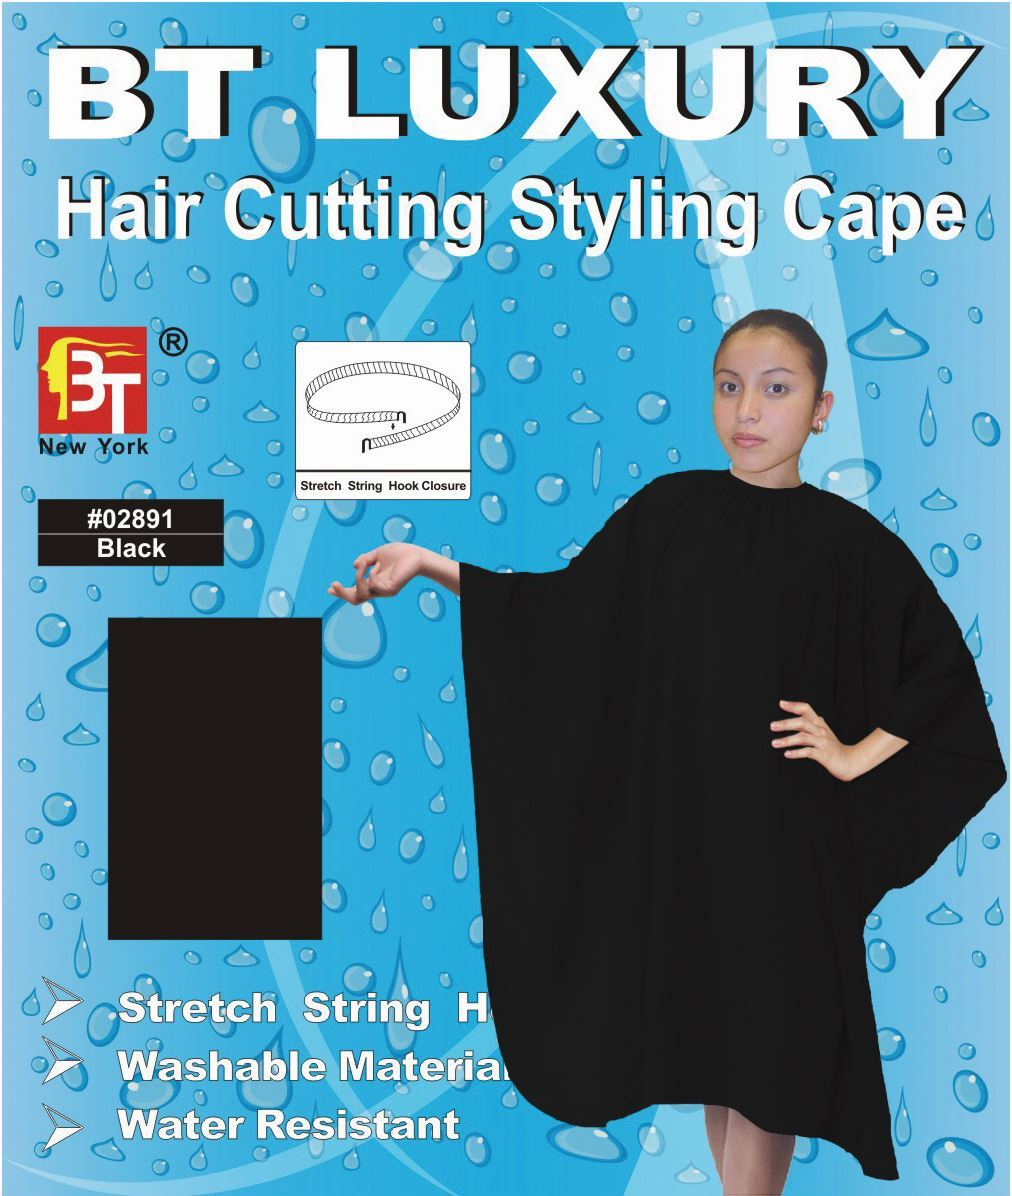 BT Luxury Hair Cutting Styling Cape